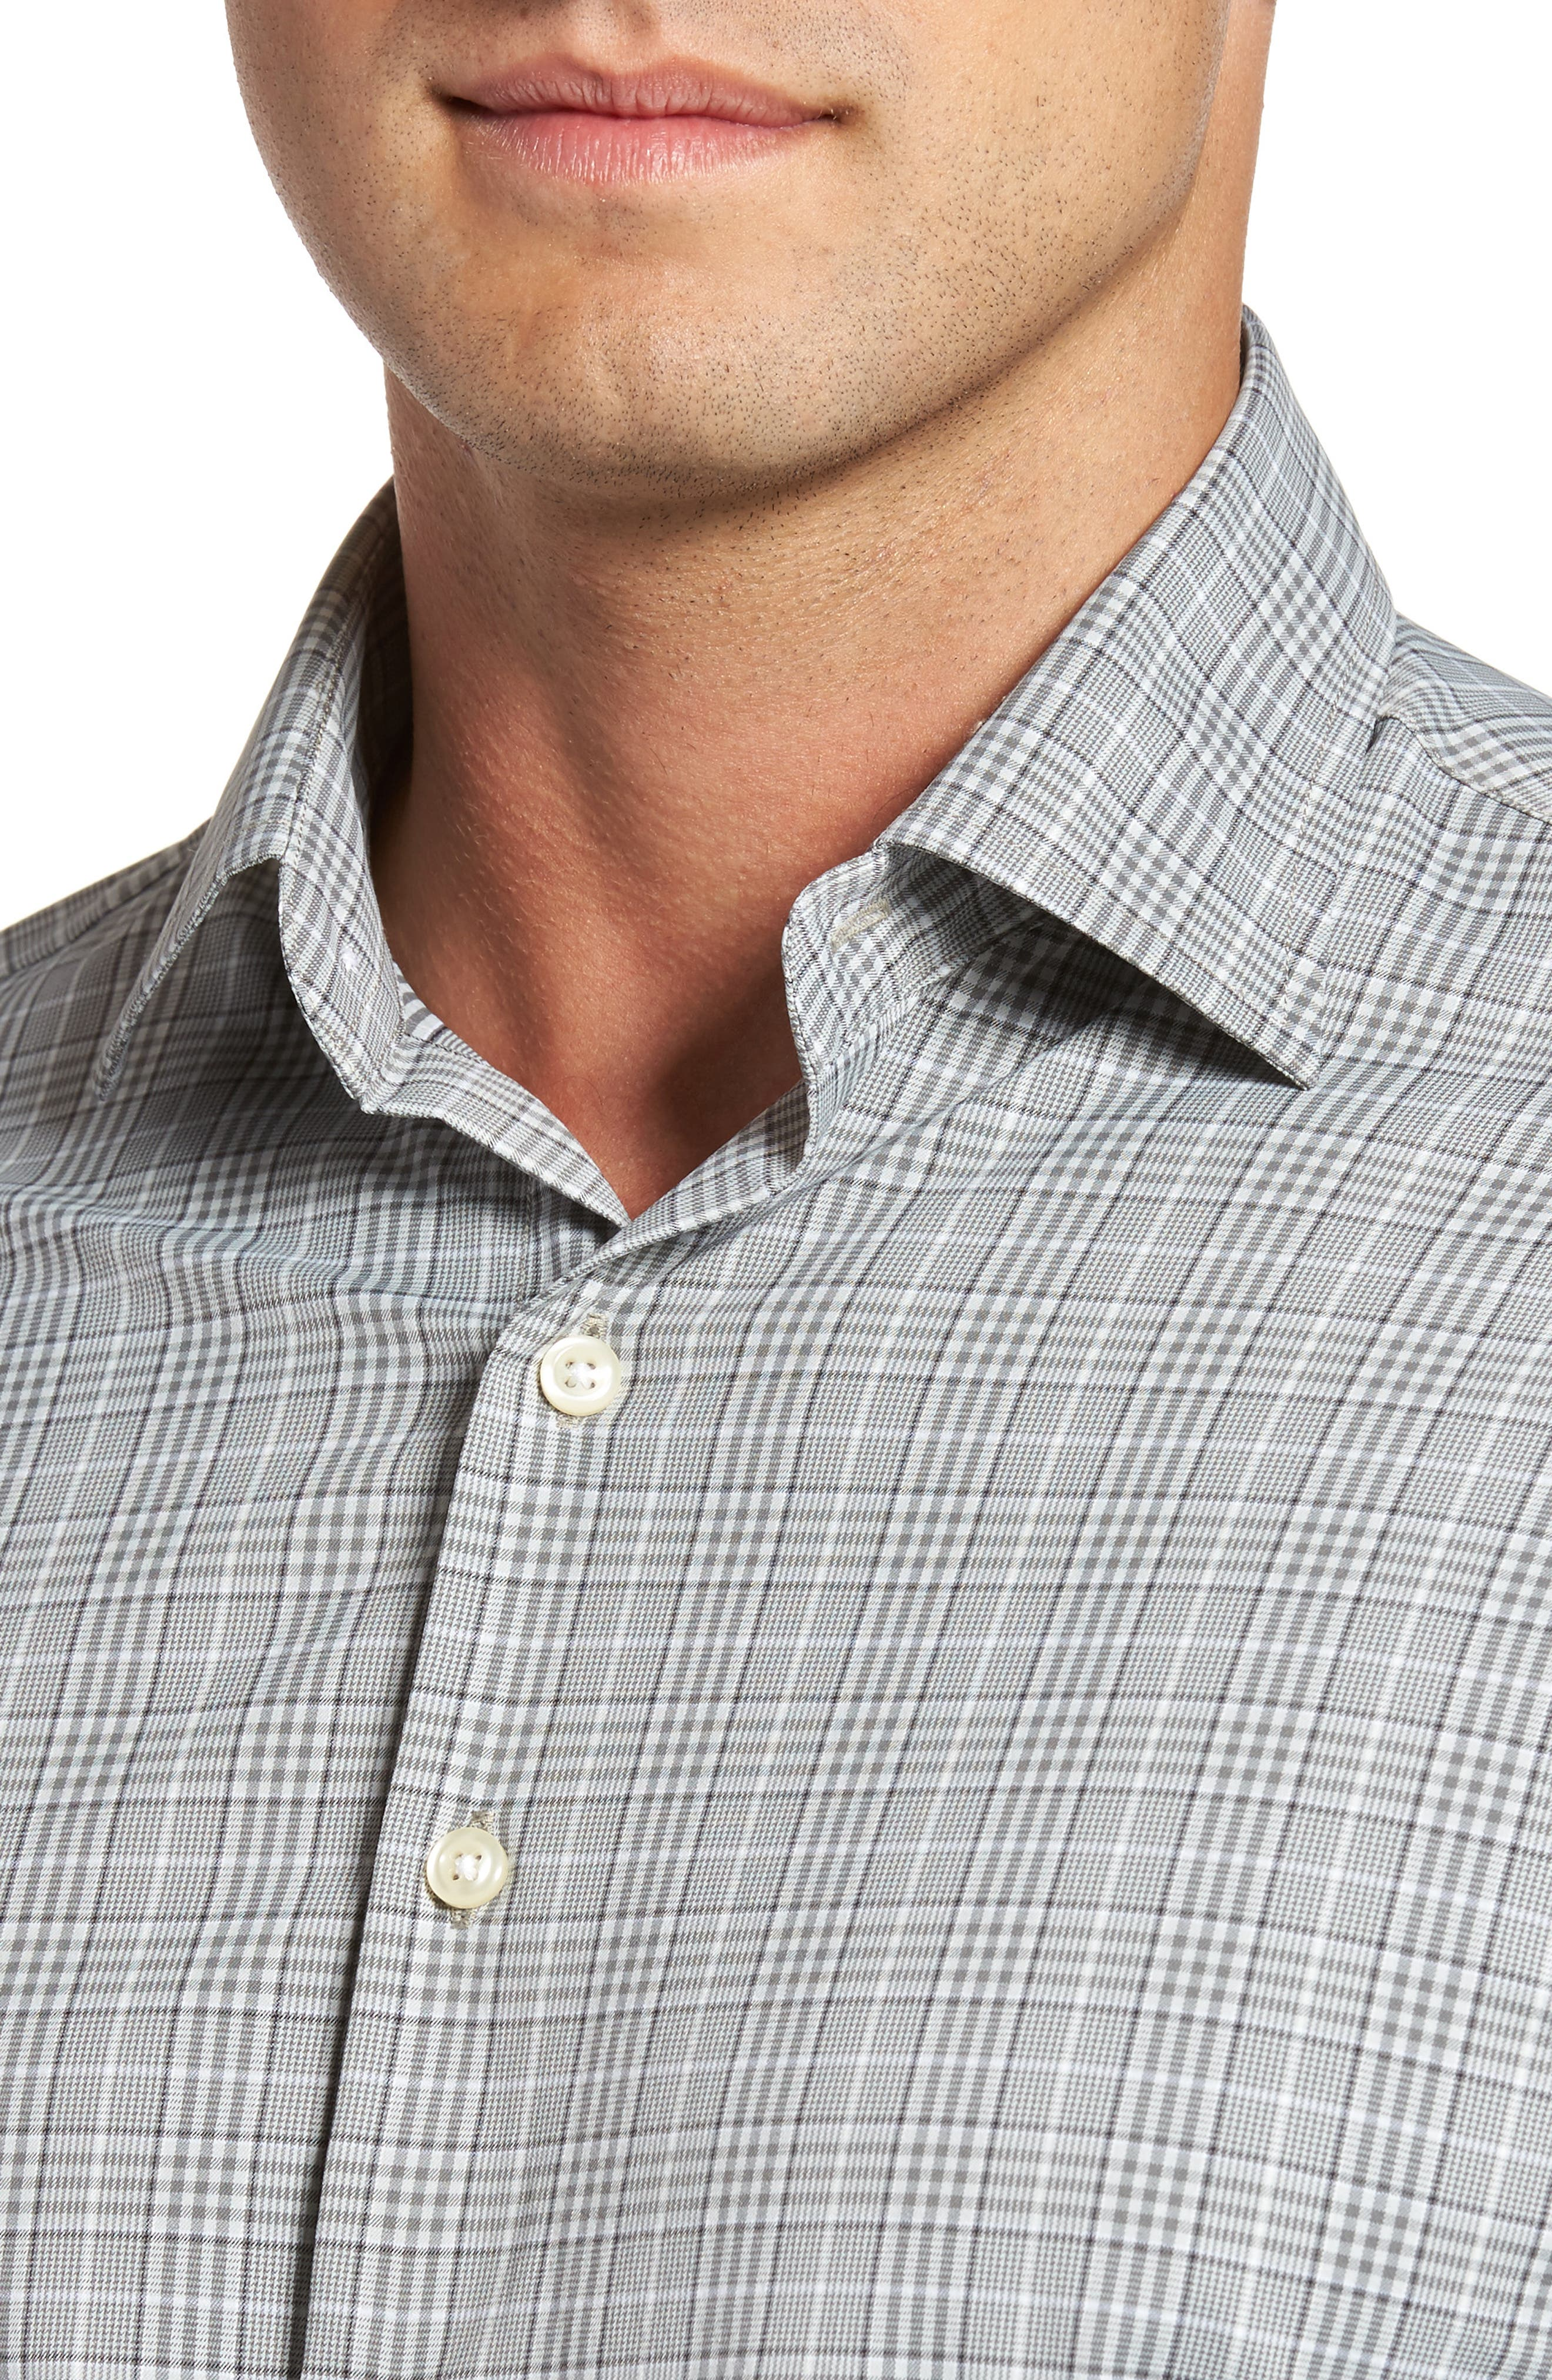 Vedder Gingham Regular Fit Performance Sport Shirt,                             Alternate thumbnail 4, color,                             025